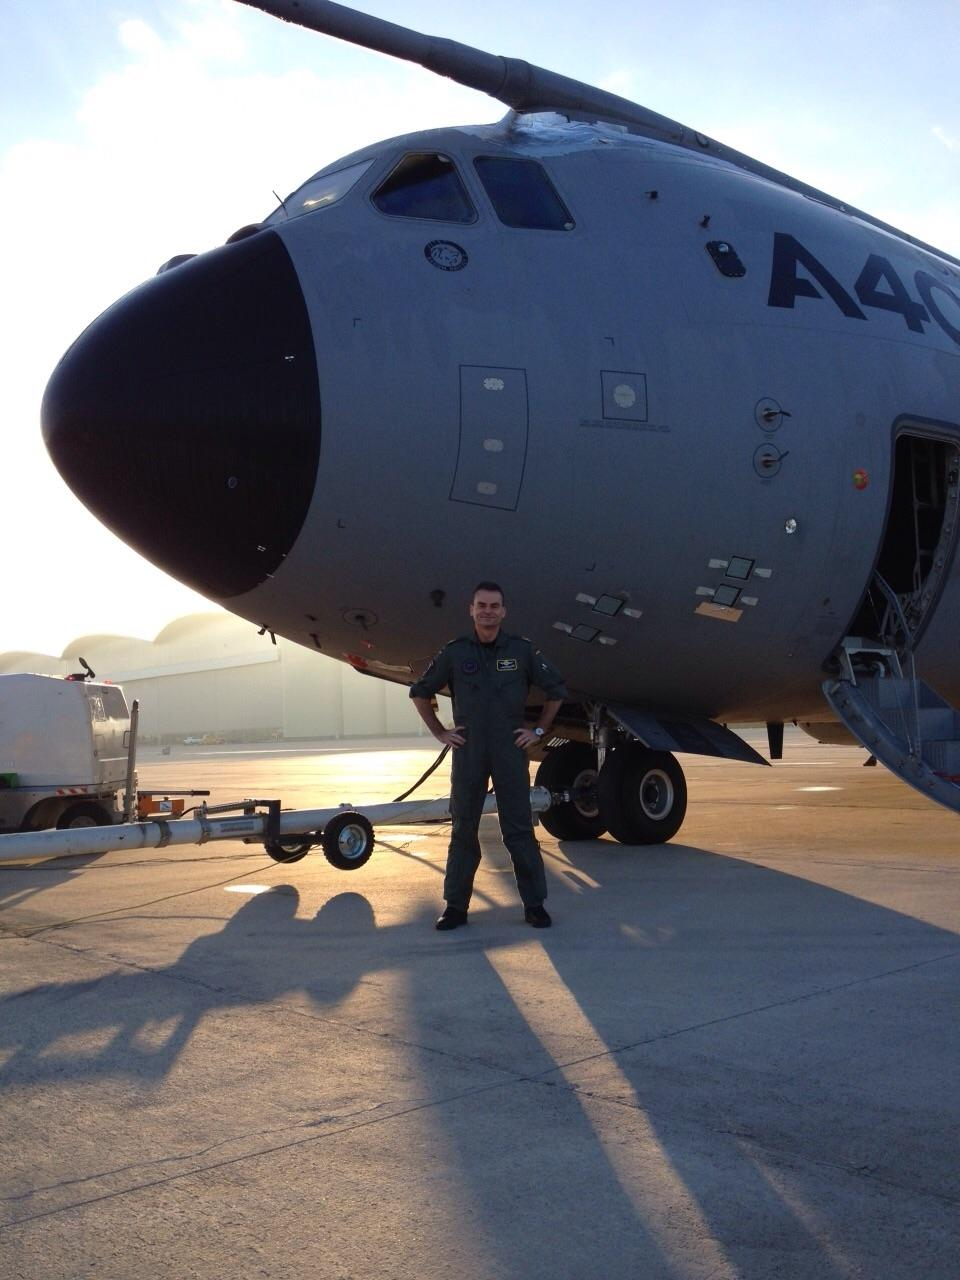 The Commander of the EATC in front of an A400M at Airbus D&S facility, Sevilla